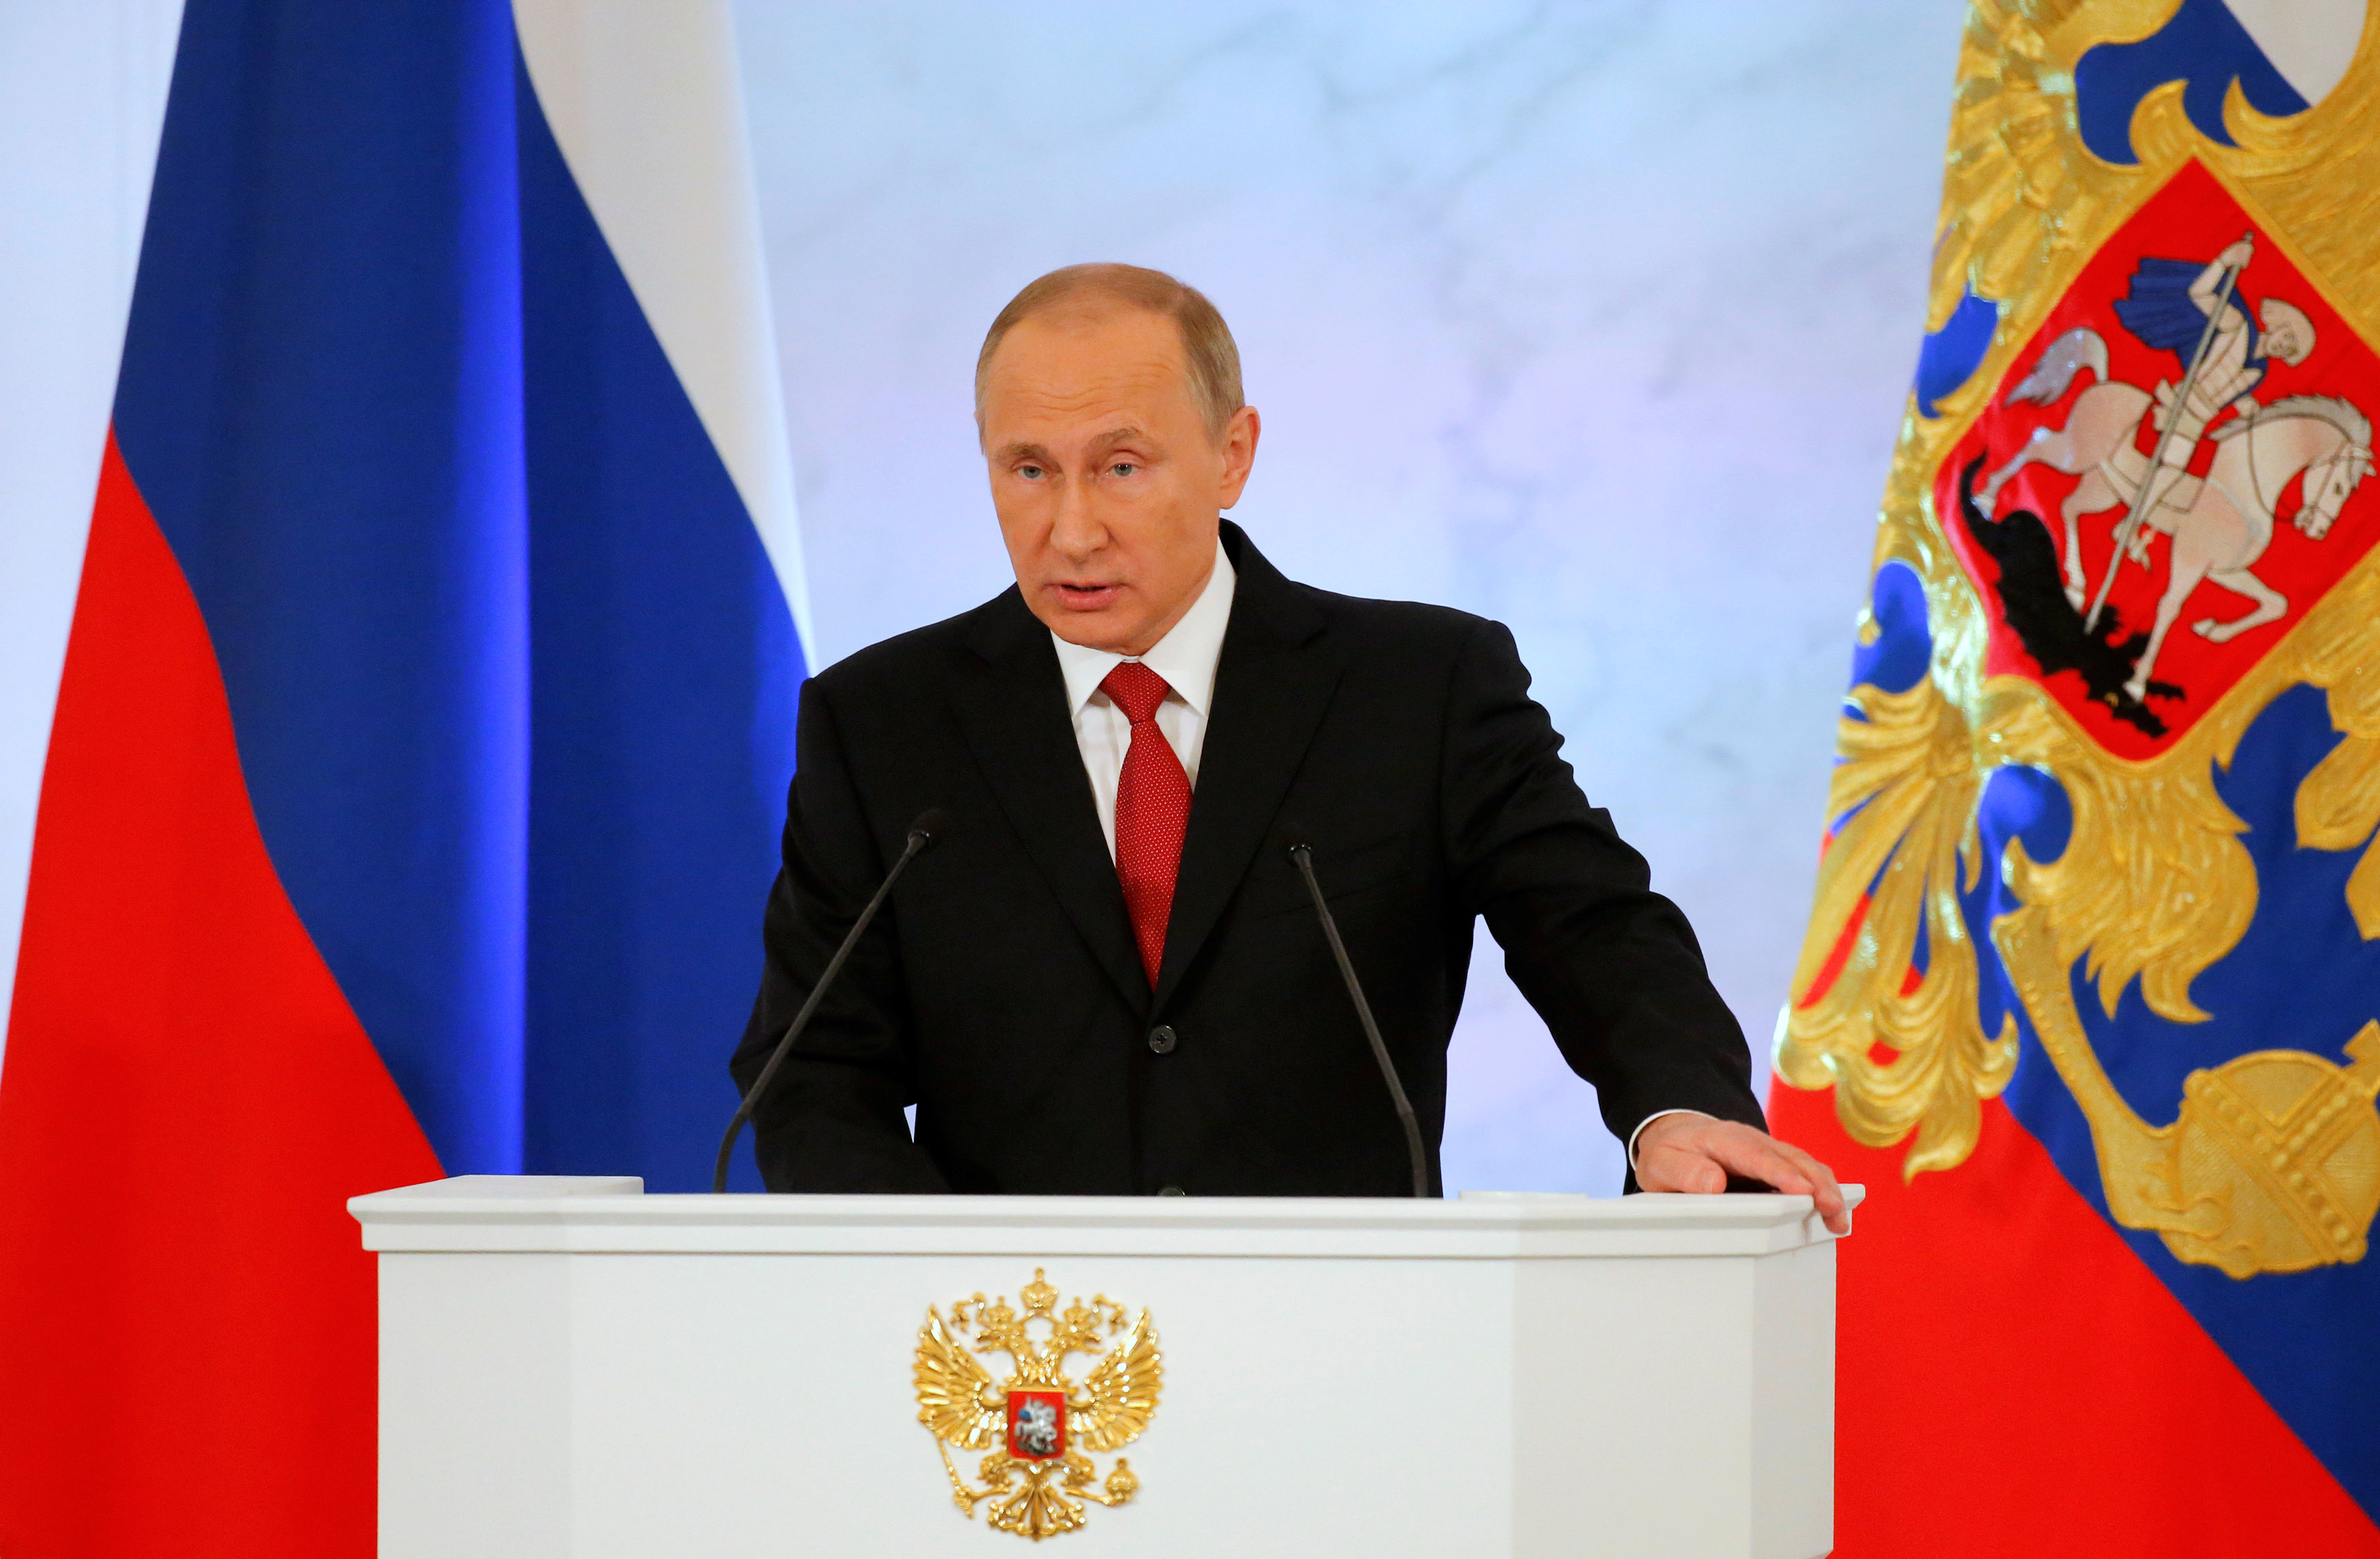 Russian President Vladimir Putin delivers a speech during his annual state of the nation address at the Kremlin in Moscow, Russia,